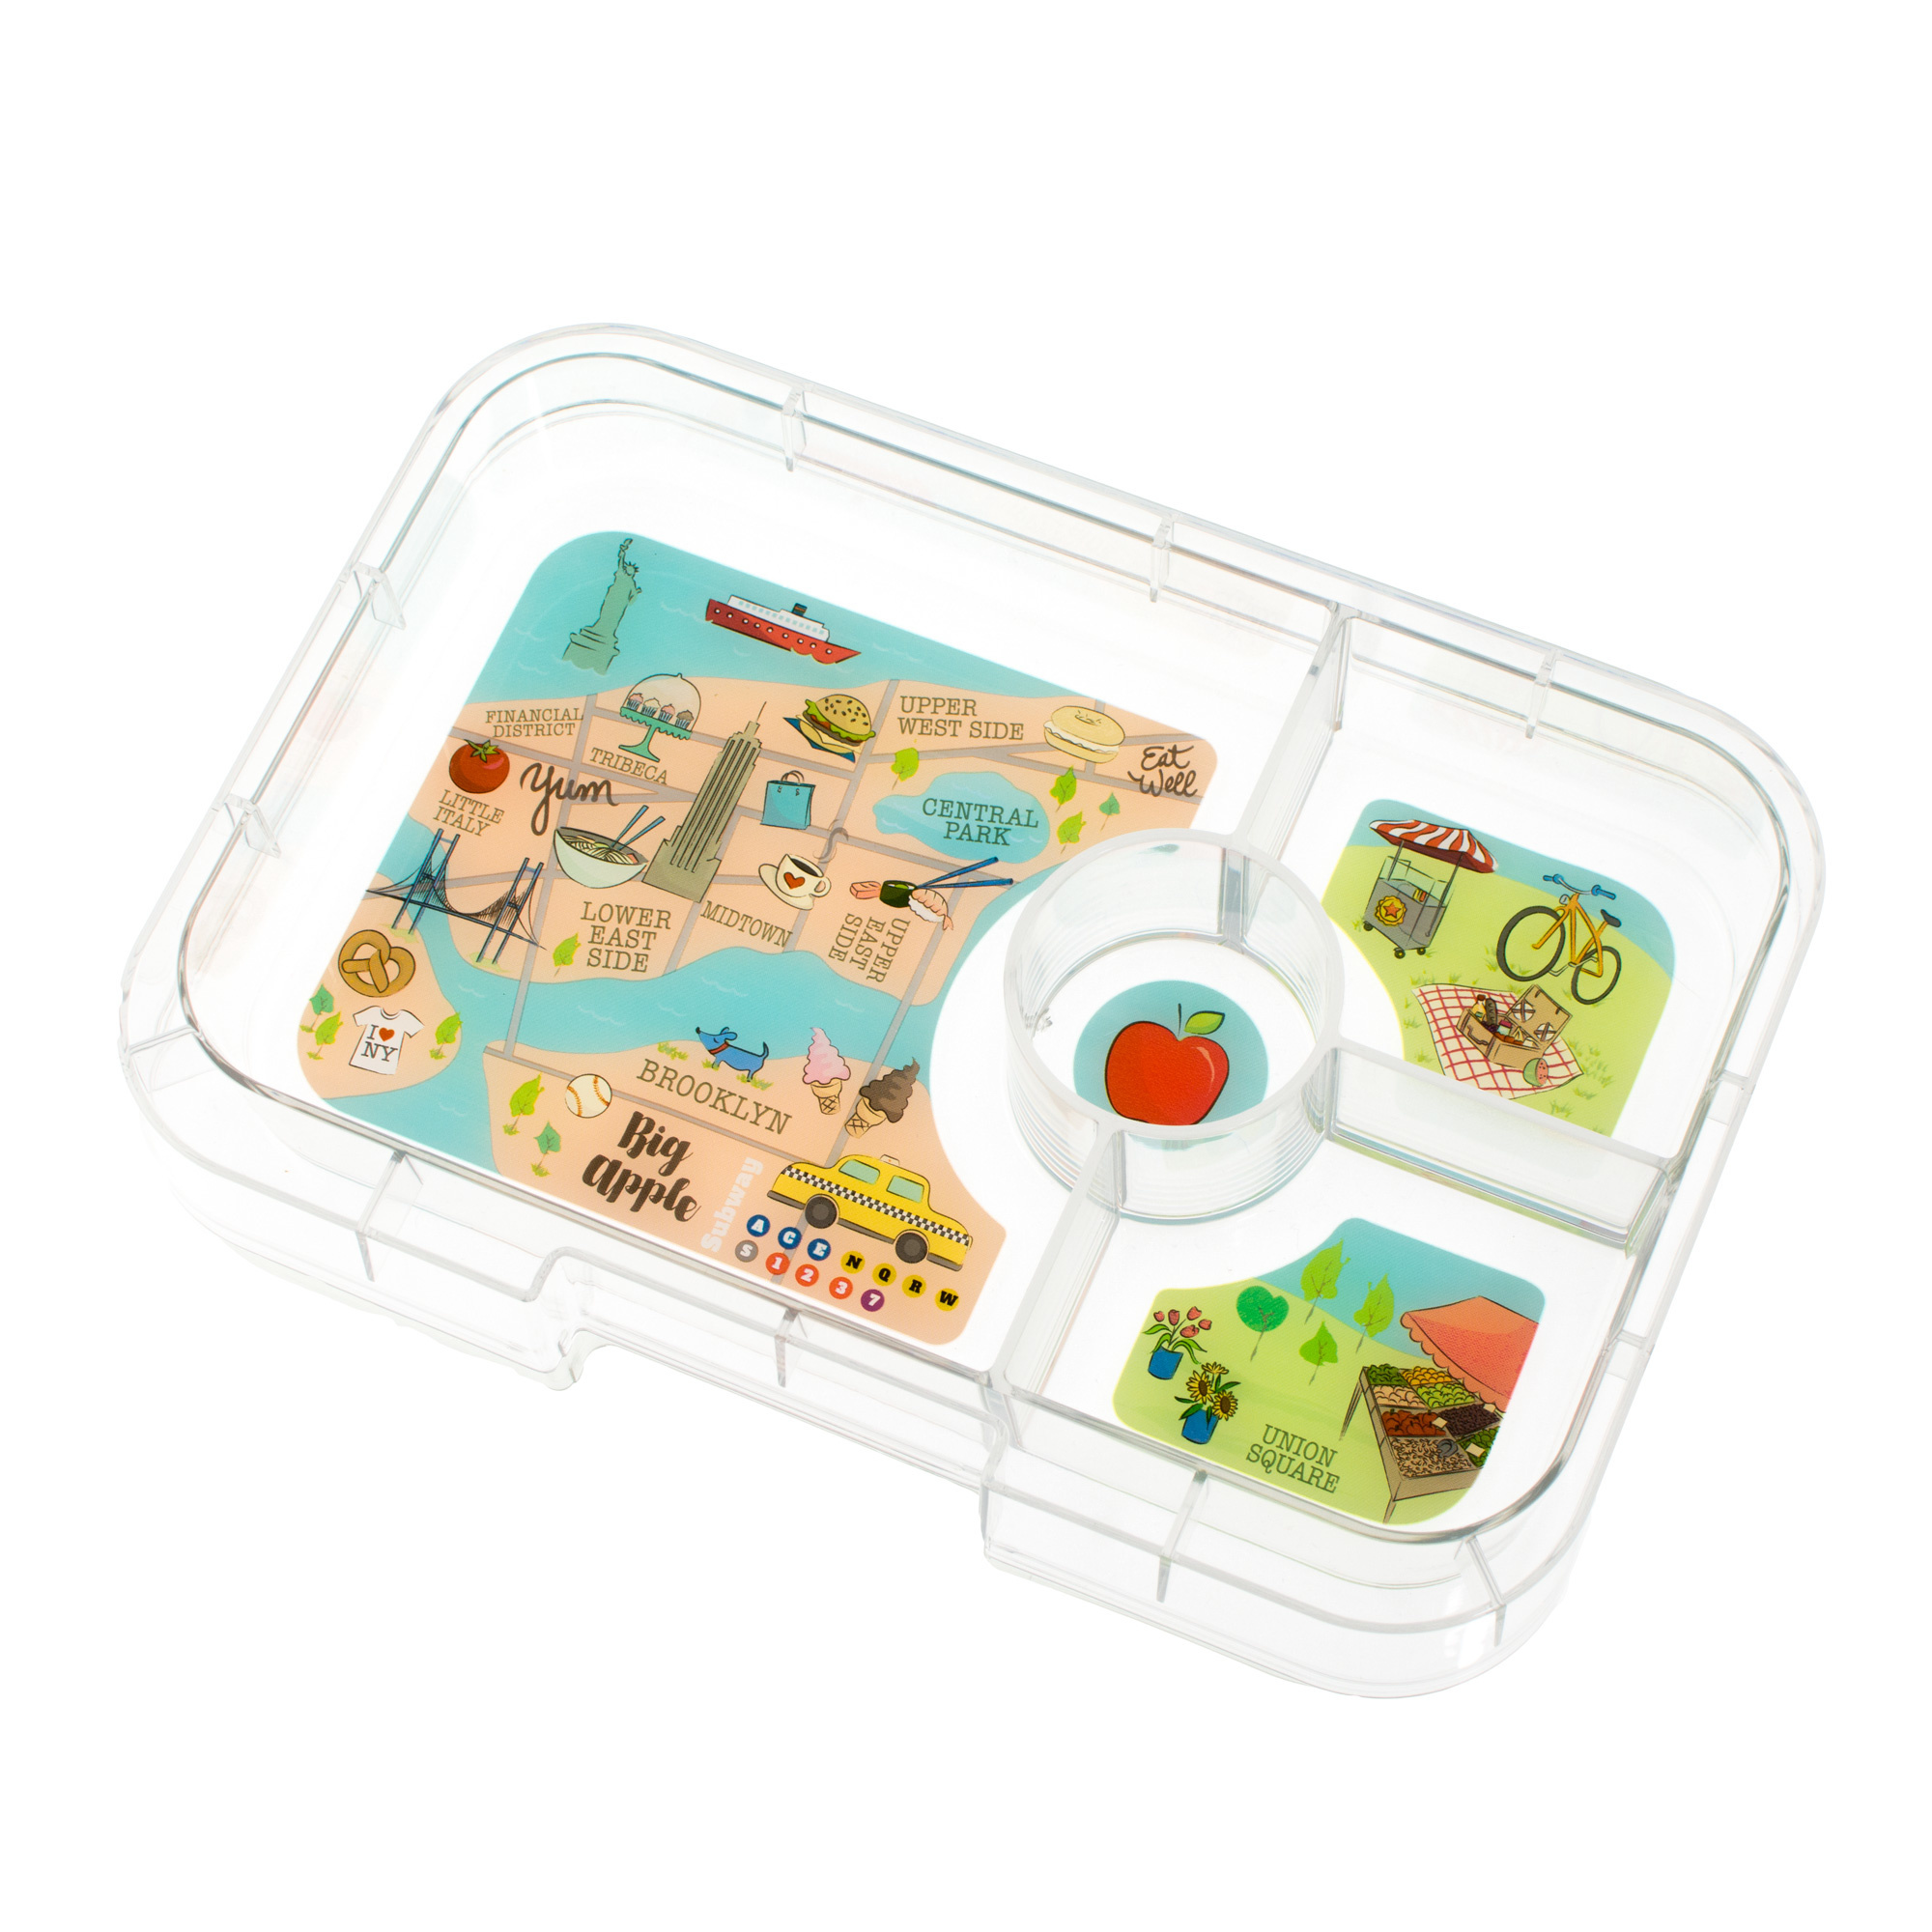 Yumbox Tapas tray 4-sections NYC-1